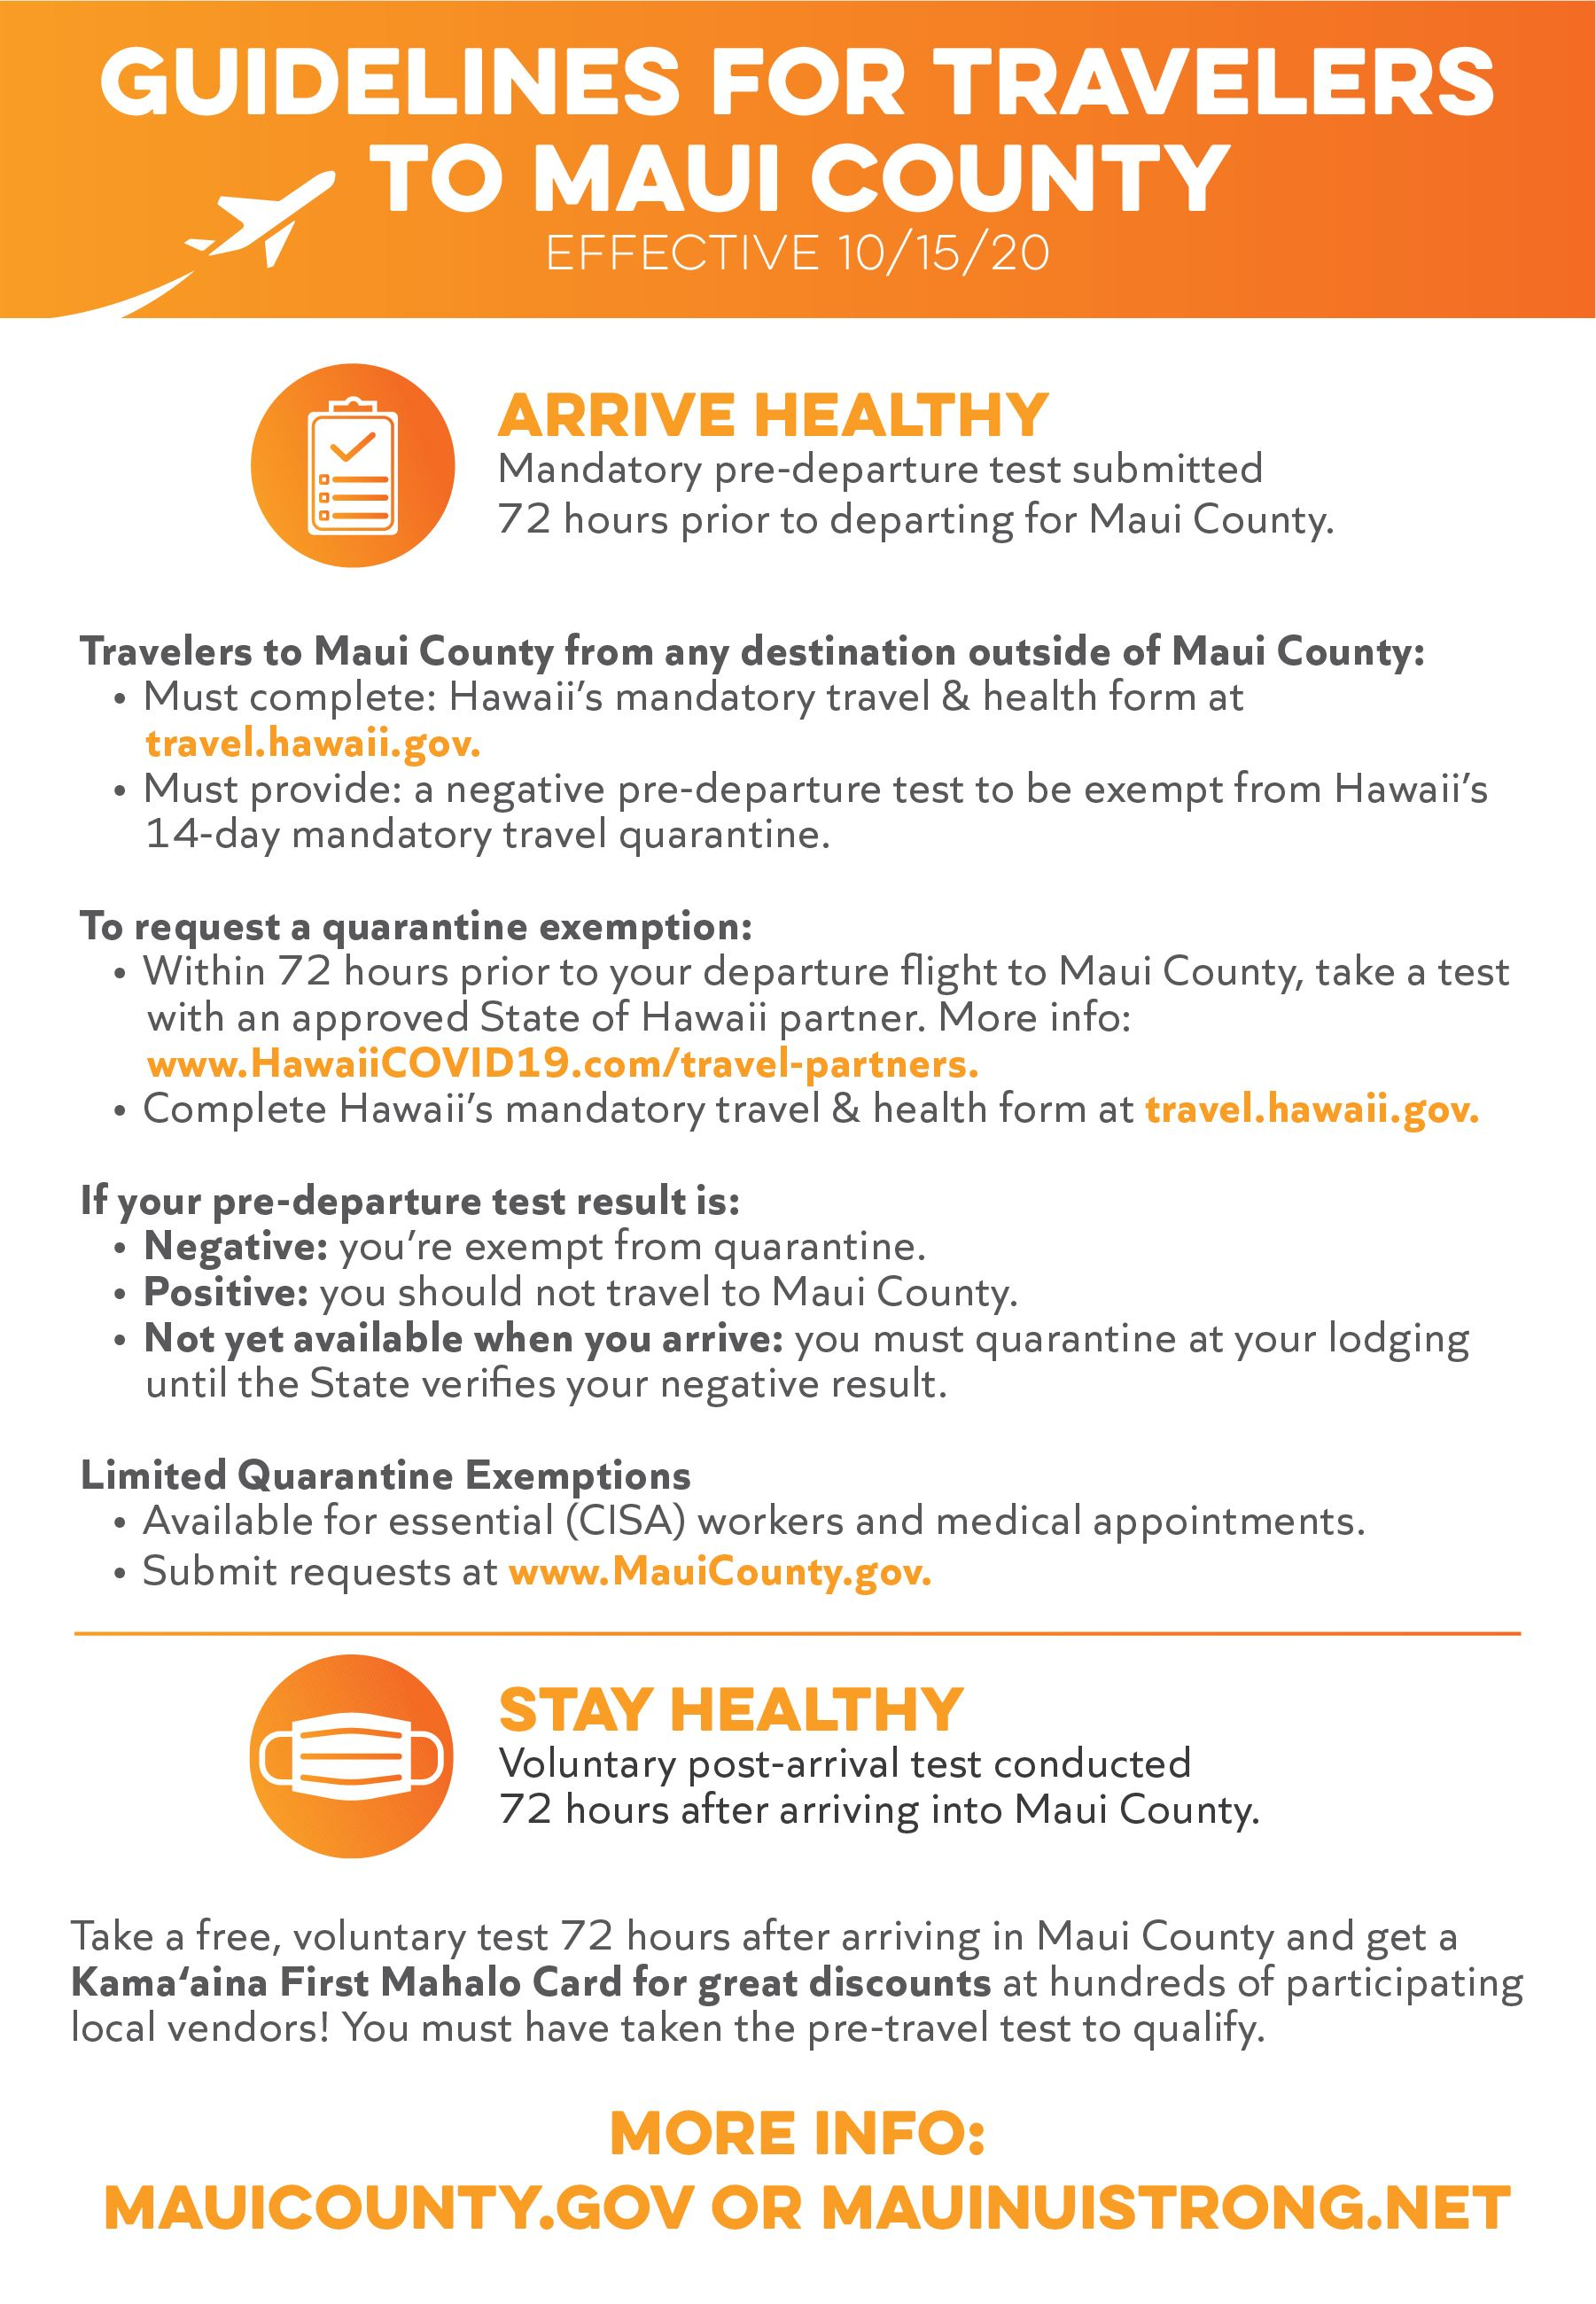 MauiCounty_Travel Infographic